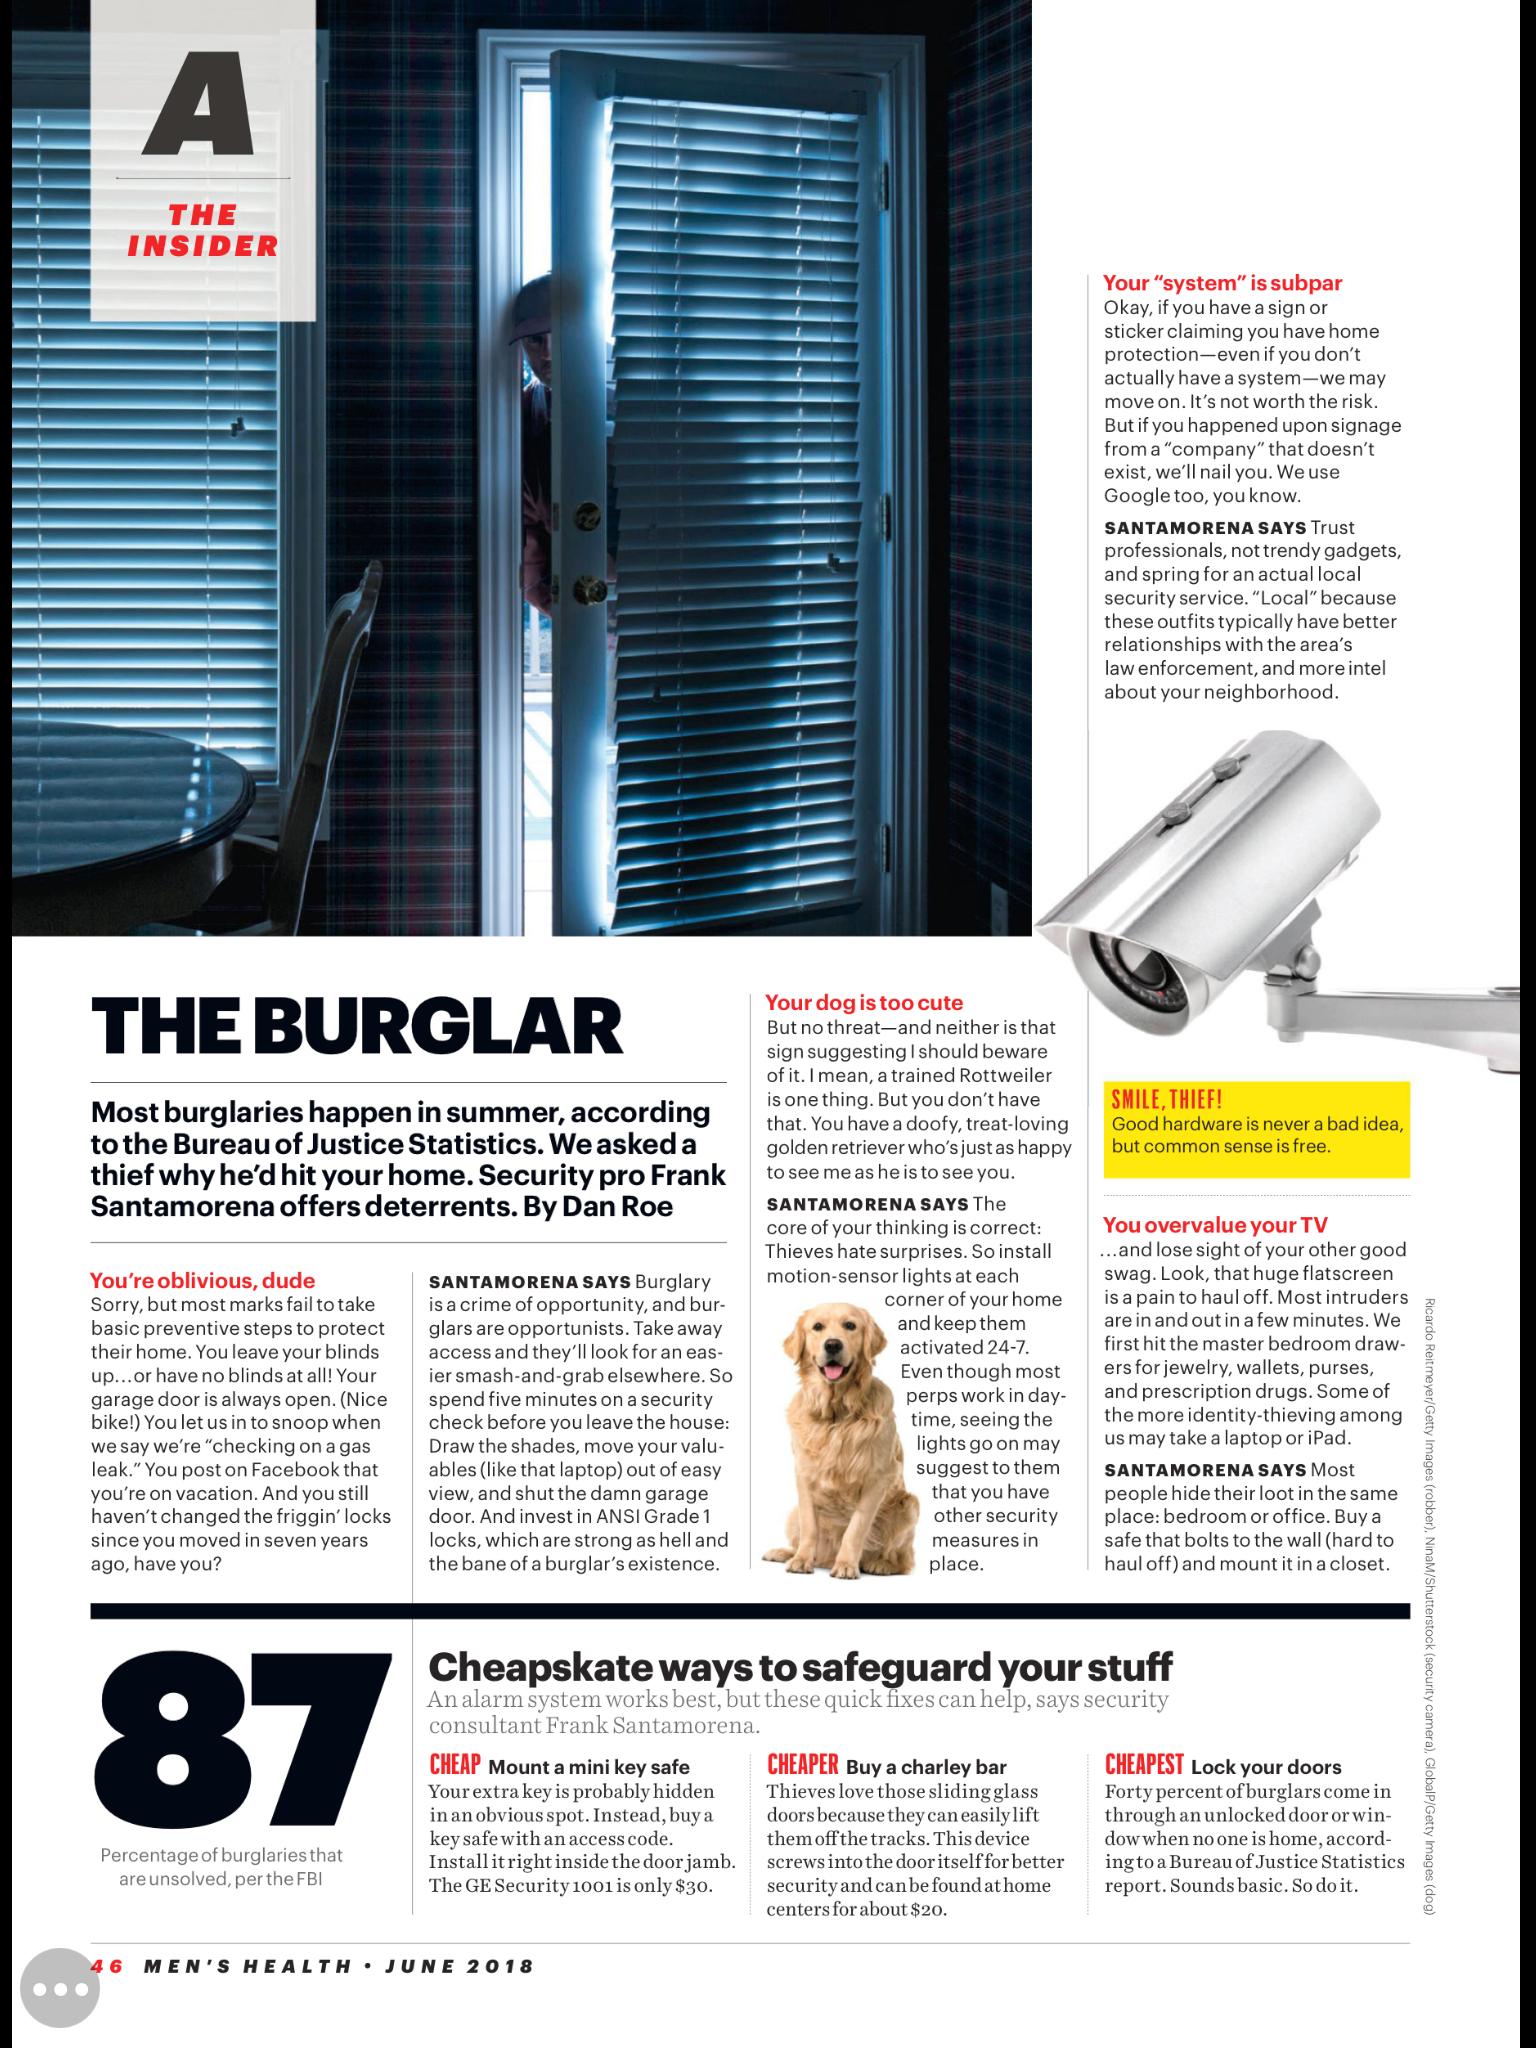 The Burglar - Most burglaries happen in summer, according to the Bureau of Justice Statistics. We asked a thief why he'd hit your home. Security pro Frank Santamorena offers deterrents. (June 2018)